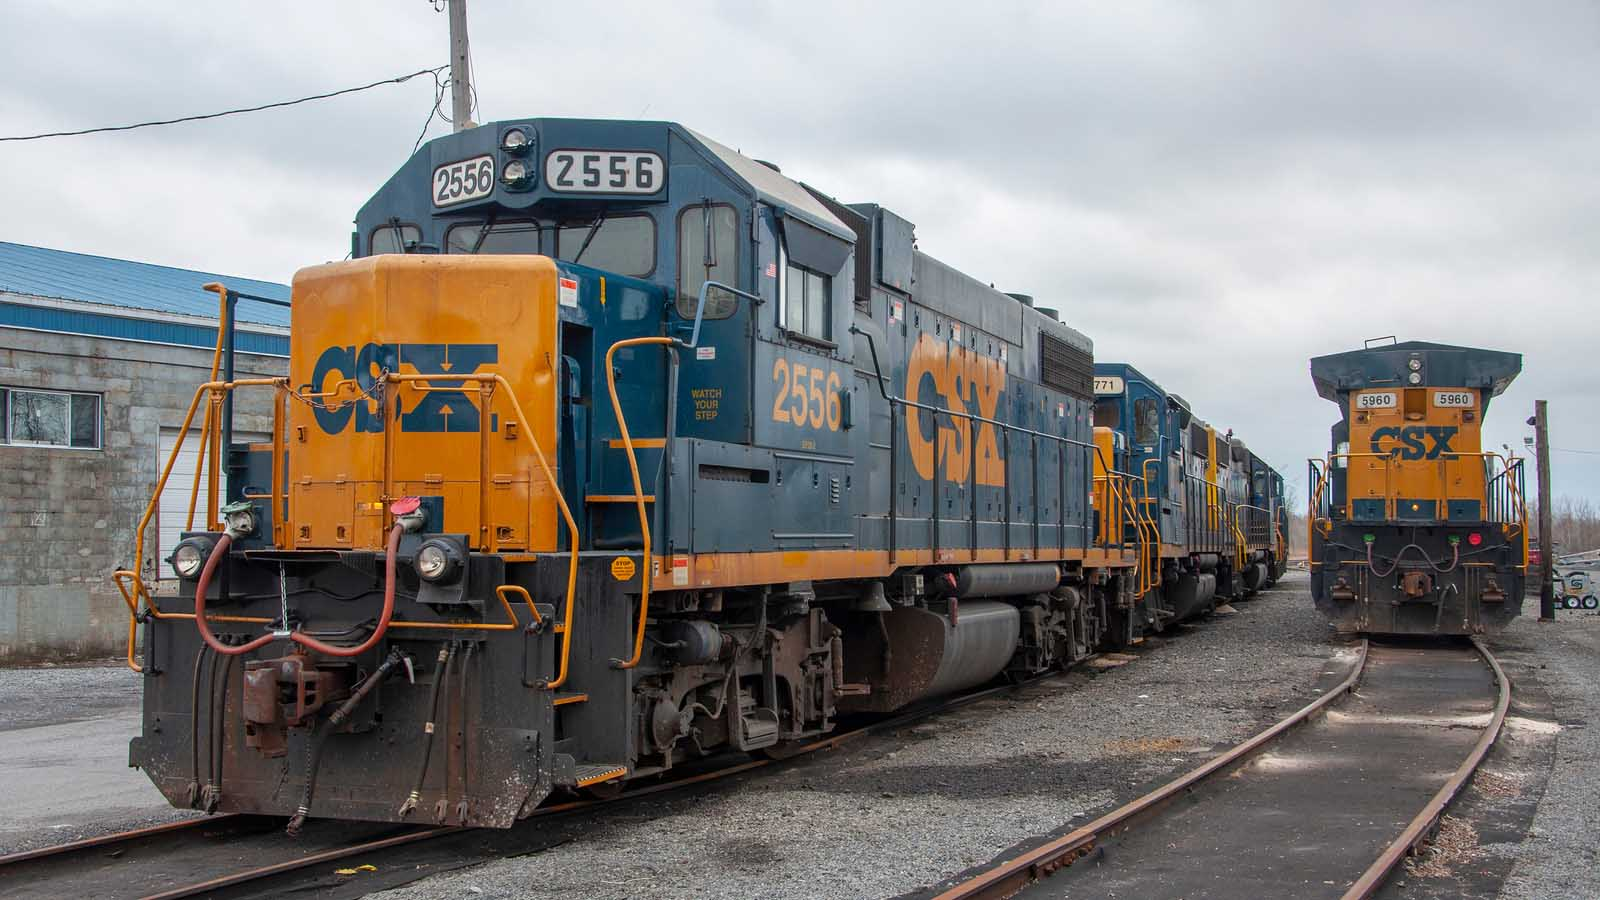 Csx Railroad News >> Csx Earnings Csx Stock Falls 3 After Hours On Q4 Results